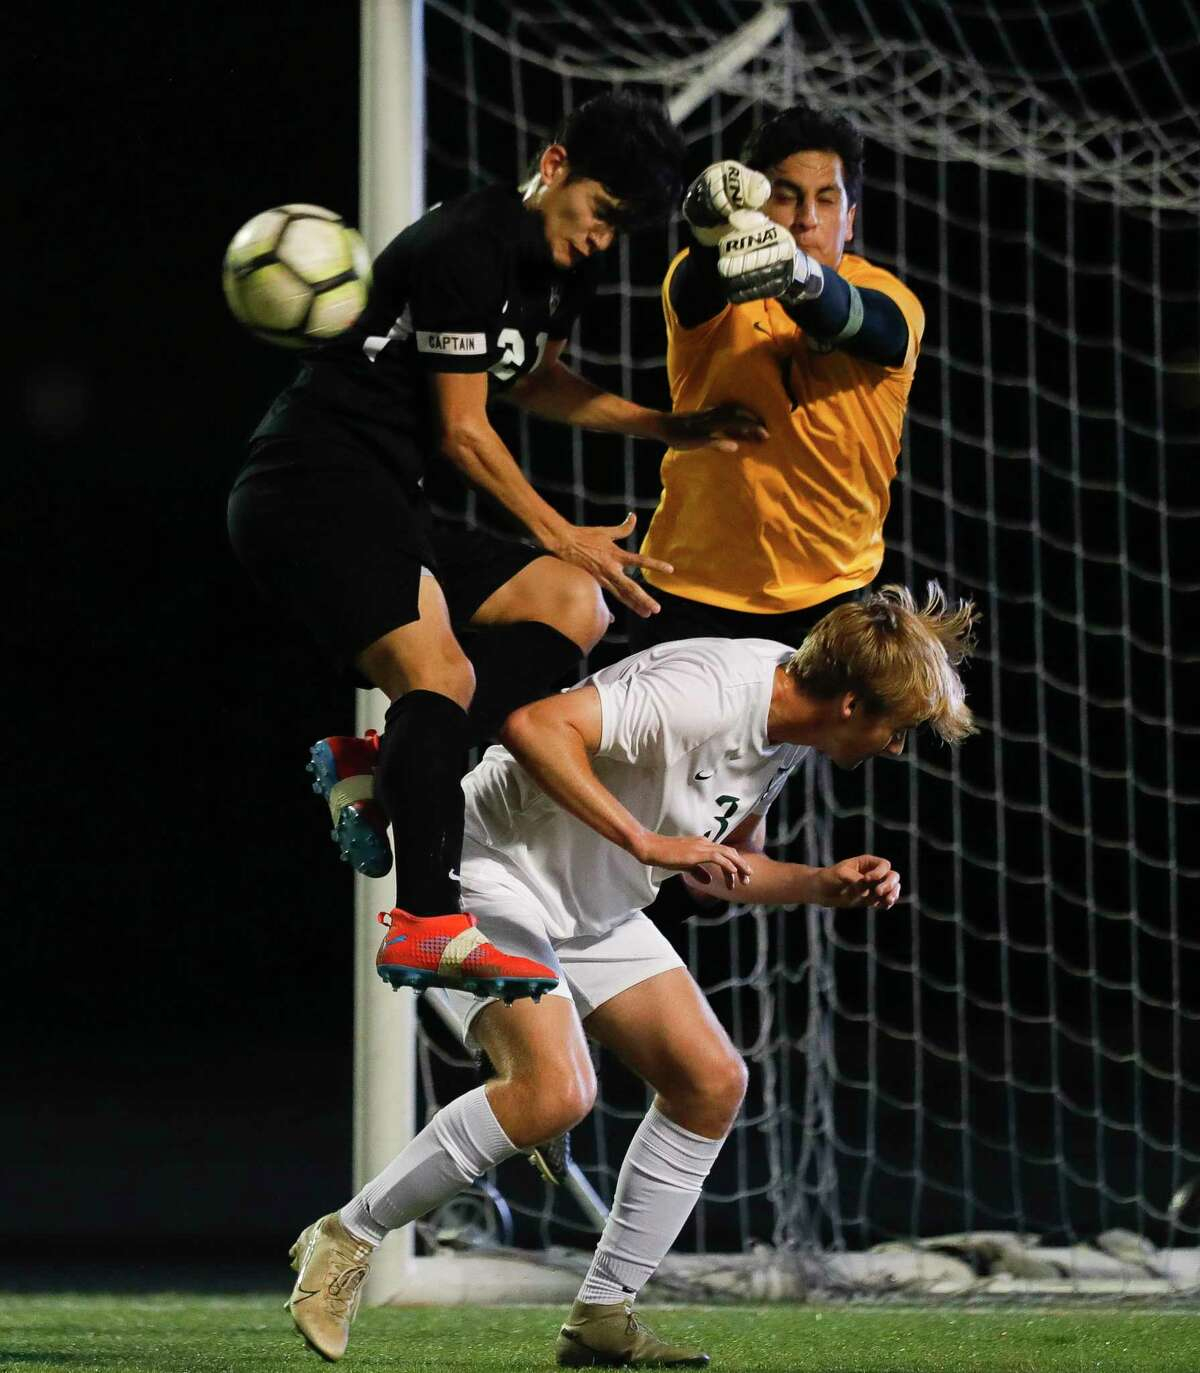 Conroe's Luis Zamora (21) tries to connect on a header by Josue Fuentes as The Woodlands goalie Eddy Tenorio (1) breaks up the ball during the first period of a District 15-6A high school soccer match at Buddy Moorhead Stadium, Tuesday, March 10, 2020, in Conroe.